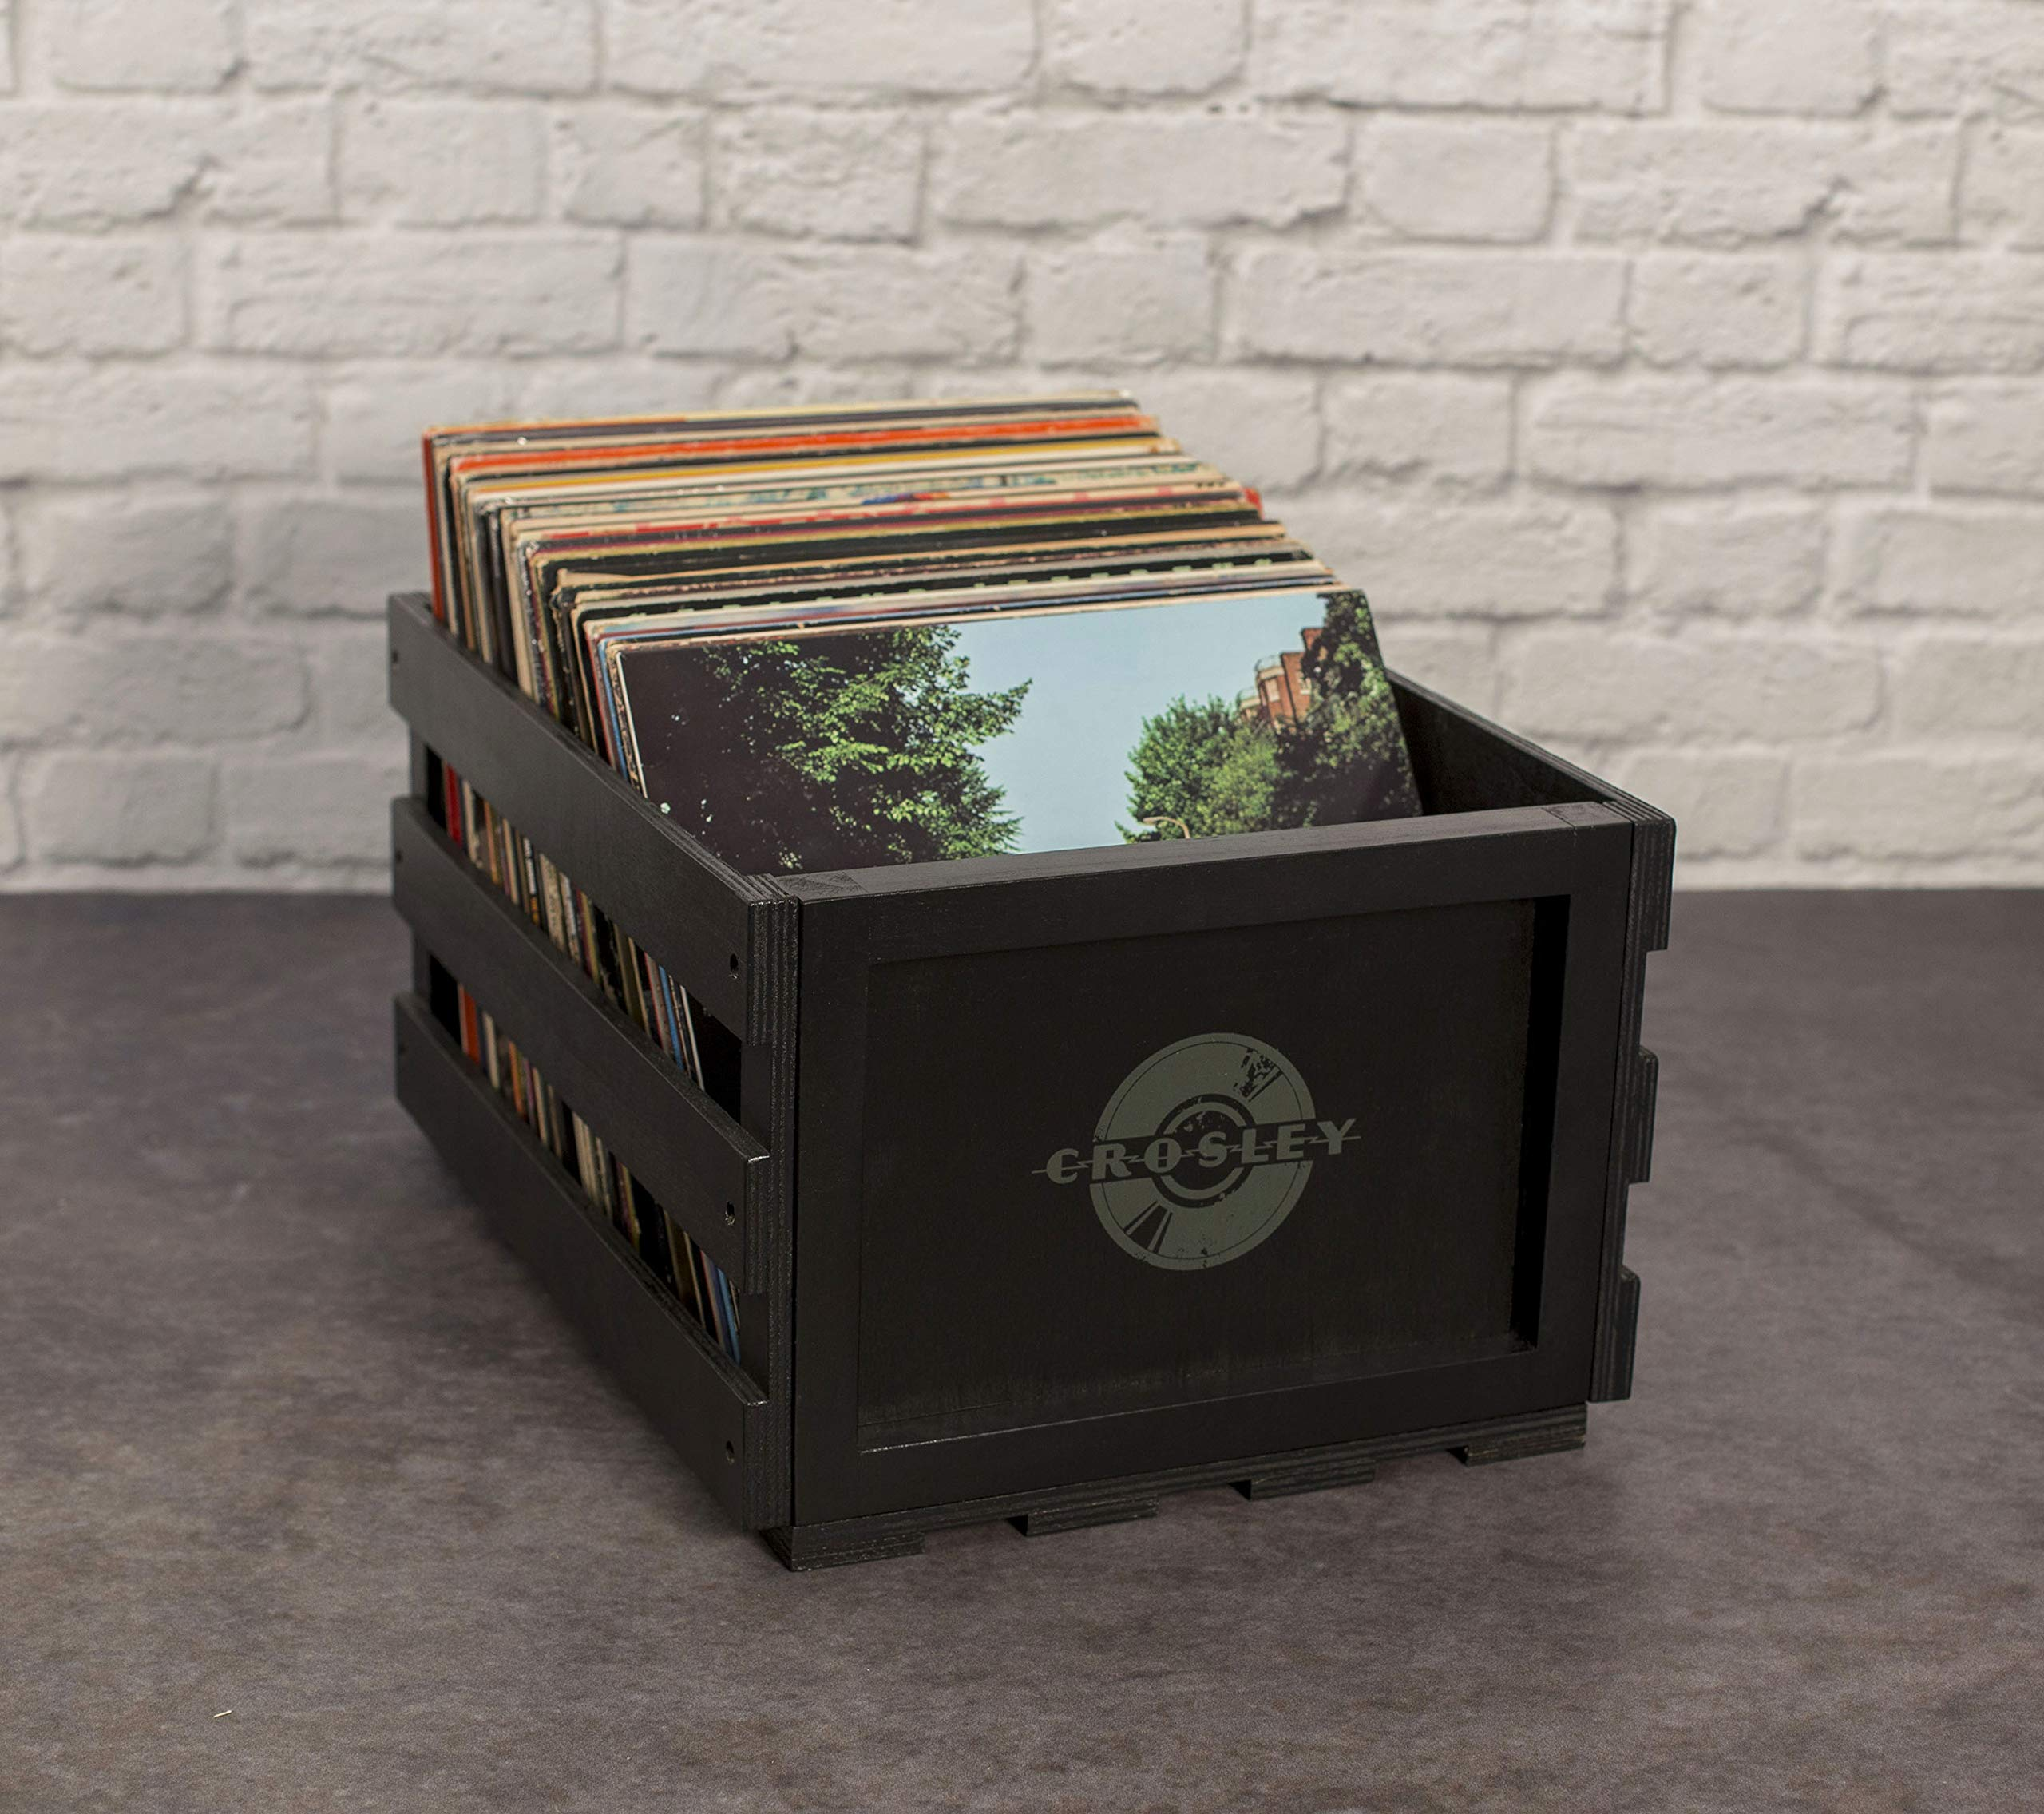 Crosley AC1004A-BK Record Storage Crate Holds up to 75 Albums, Black by Crosley (Image #7)